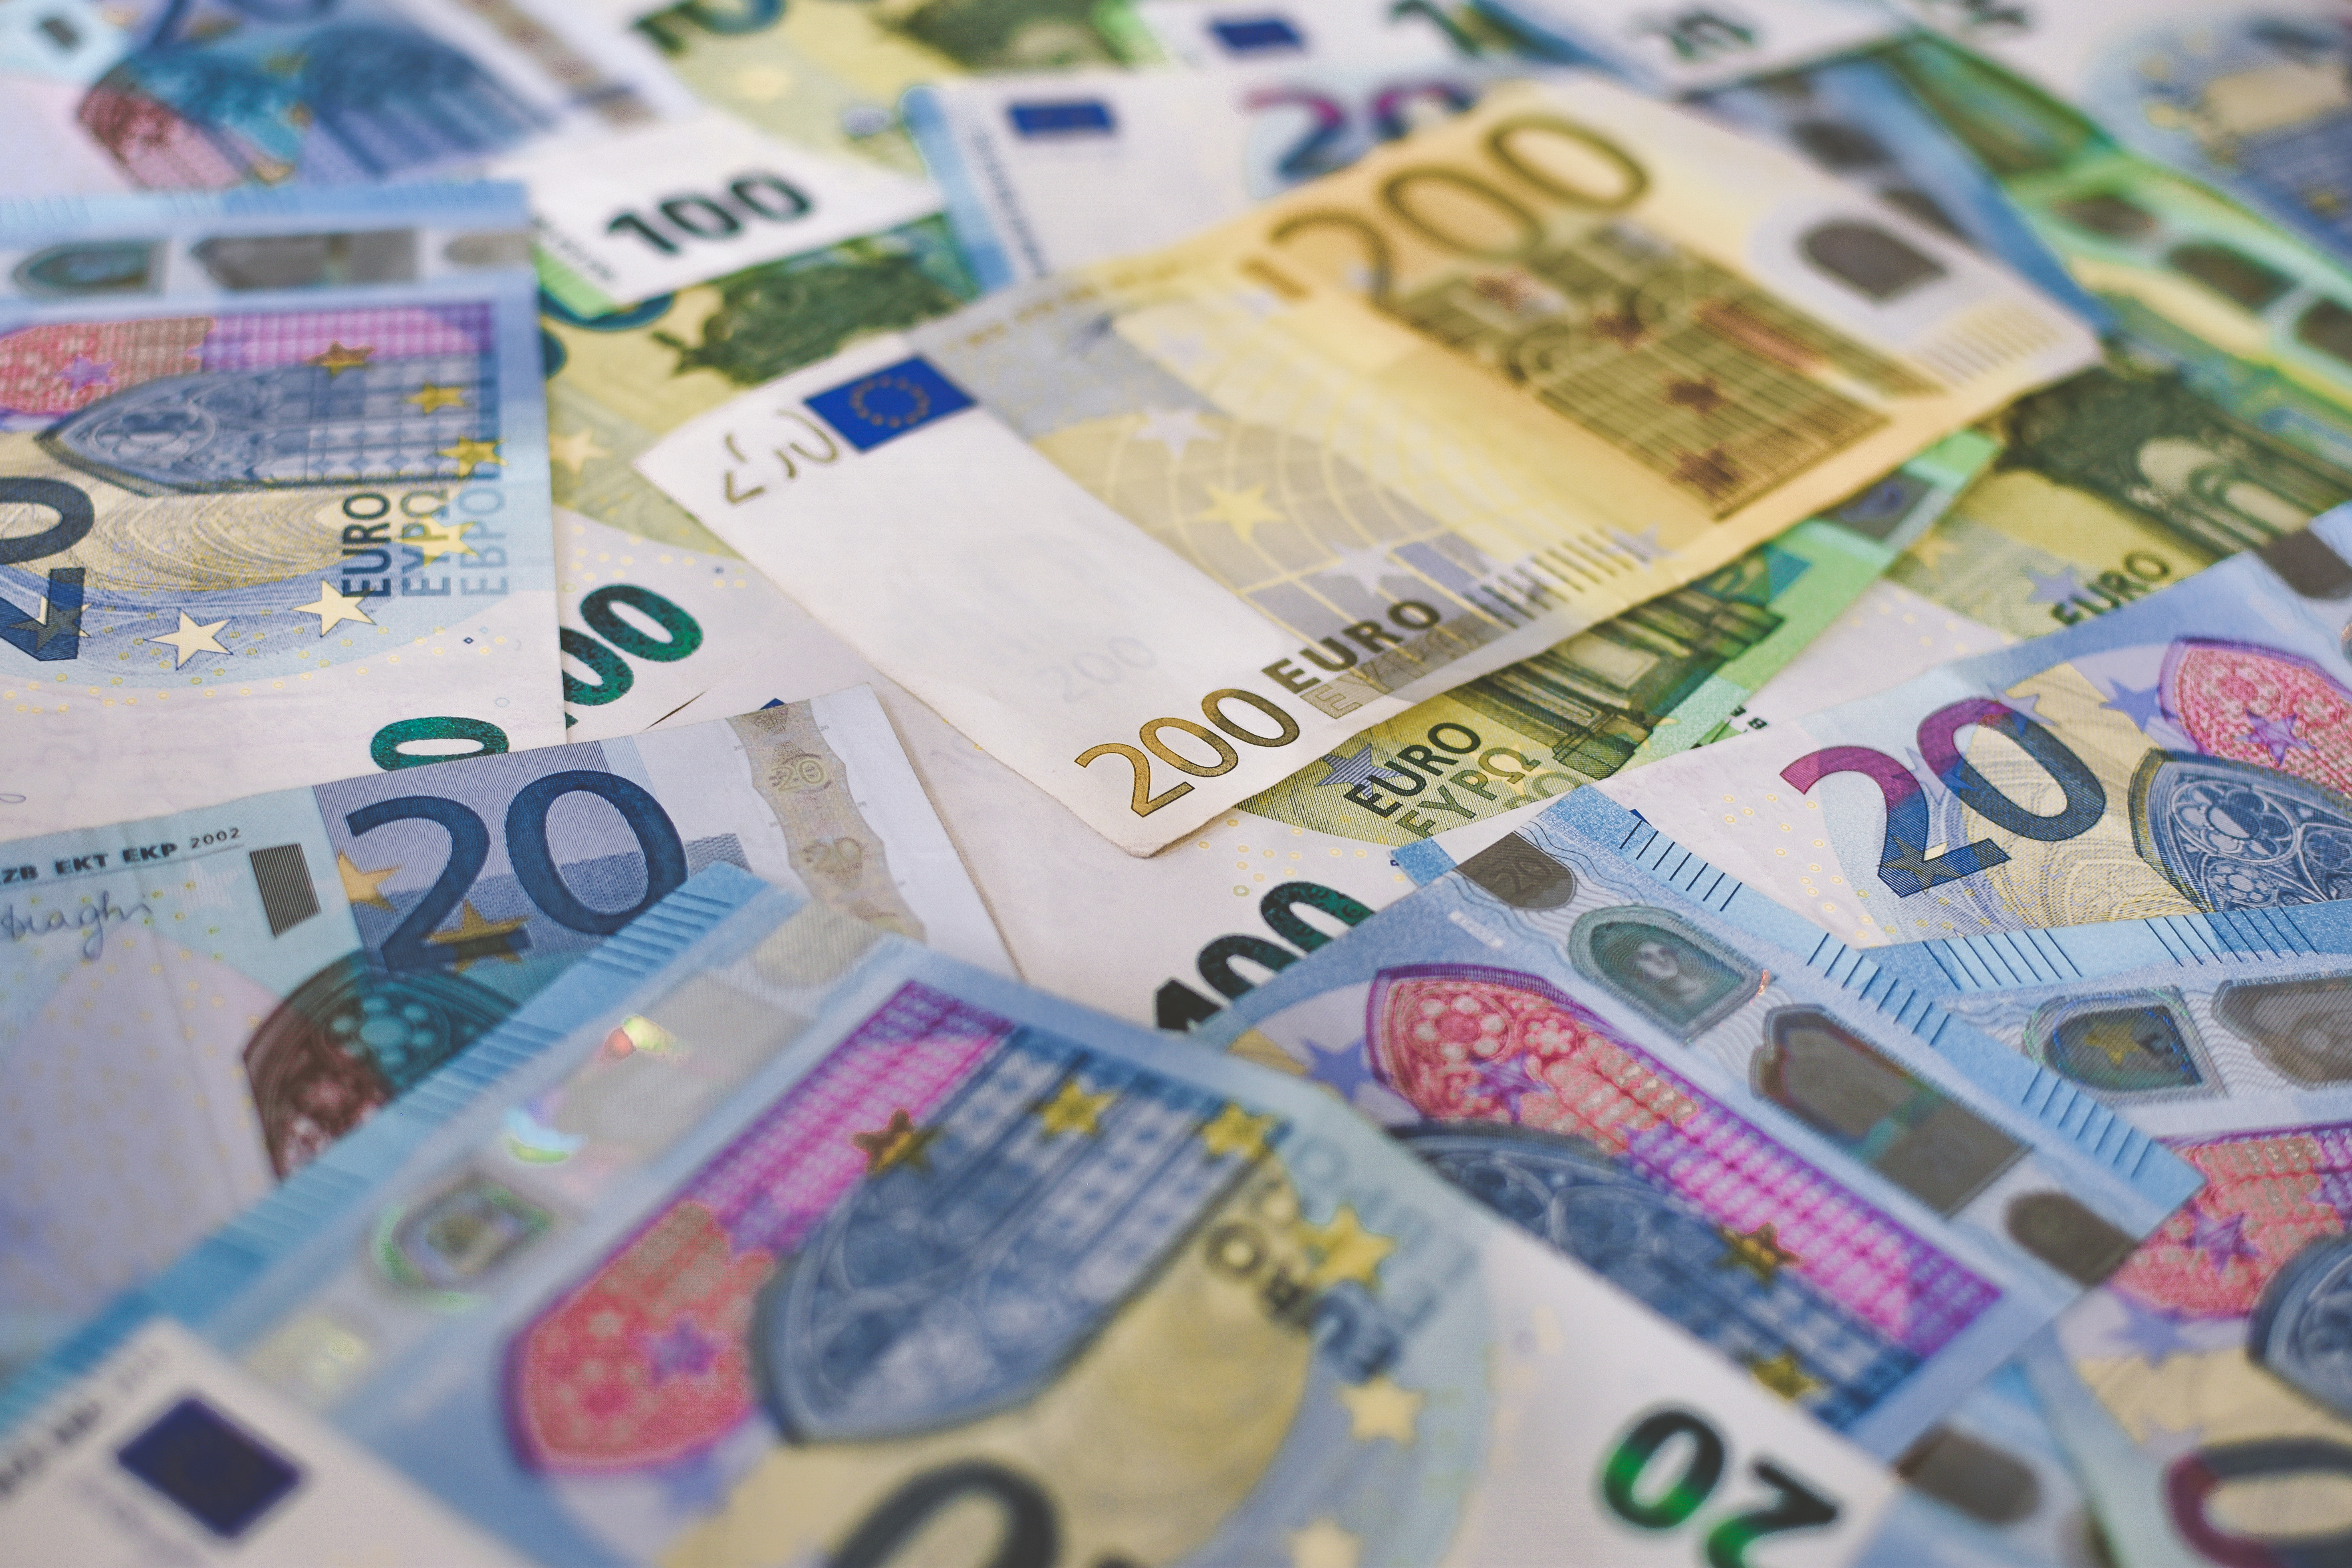 A pile of Euro (EUR) banknotes that include 20, 100, and 200 notes. (Part V)